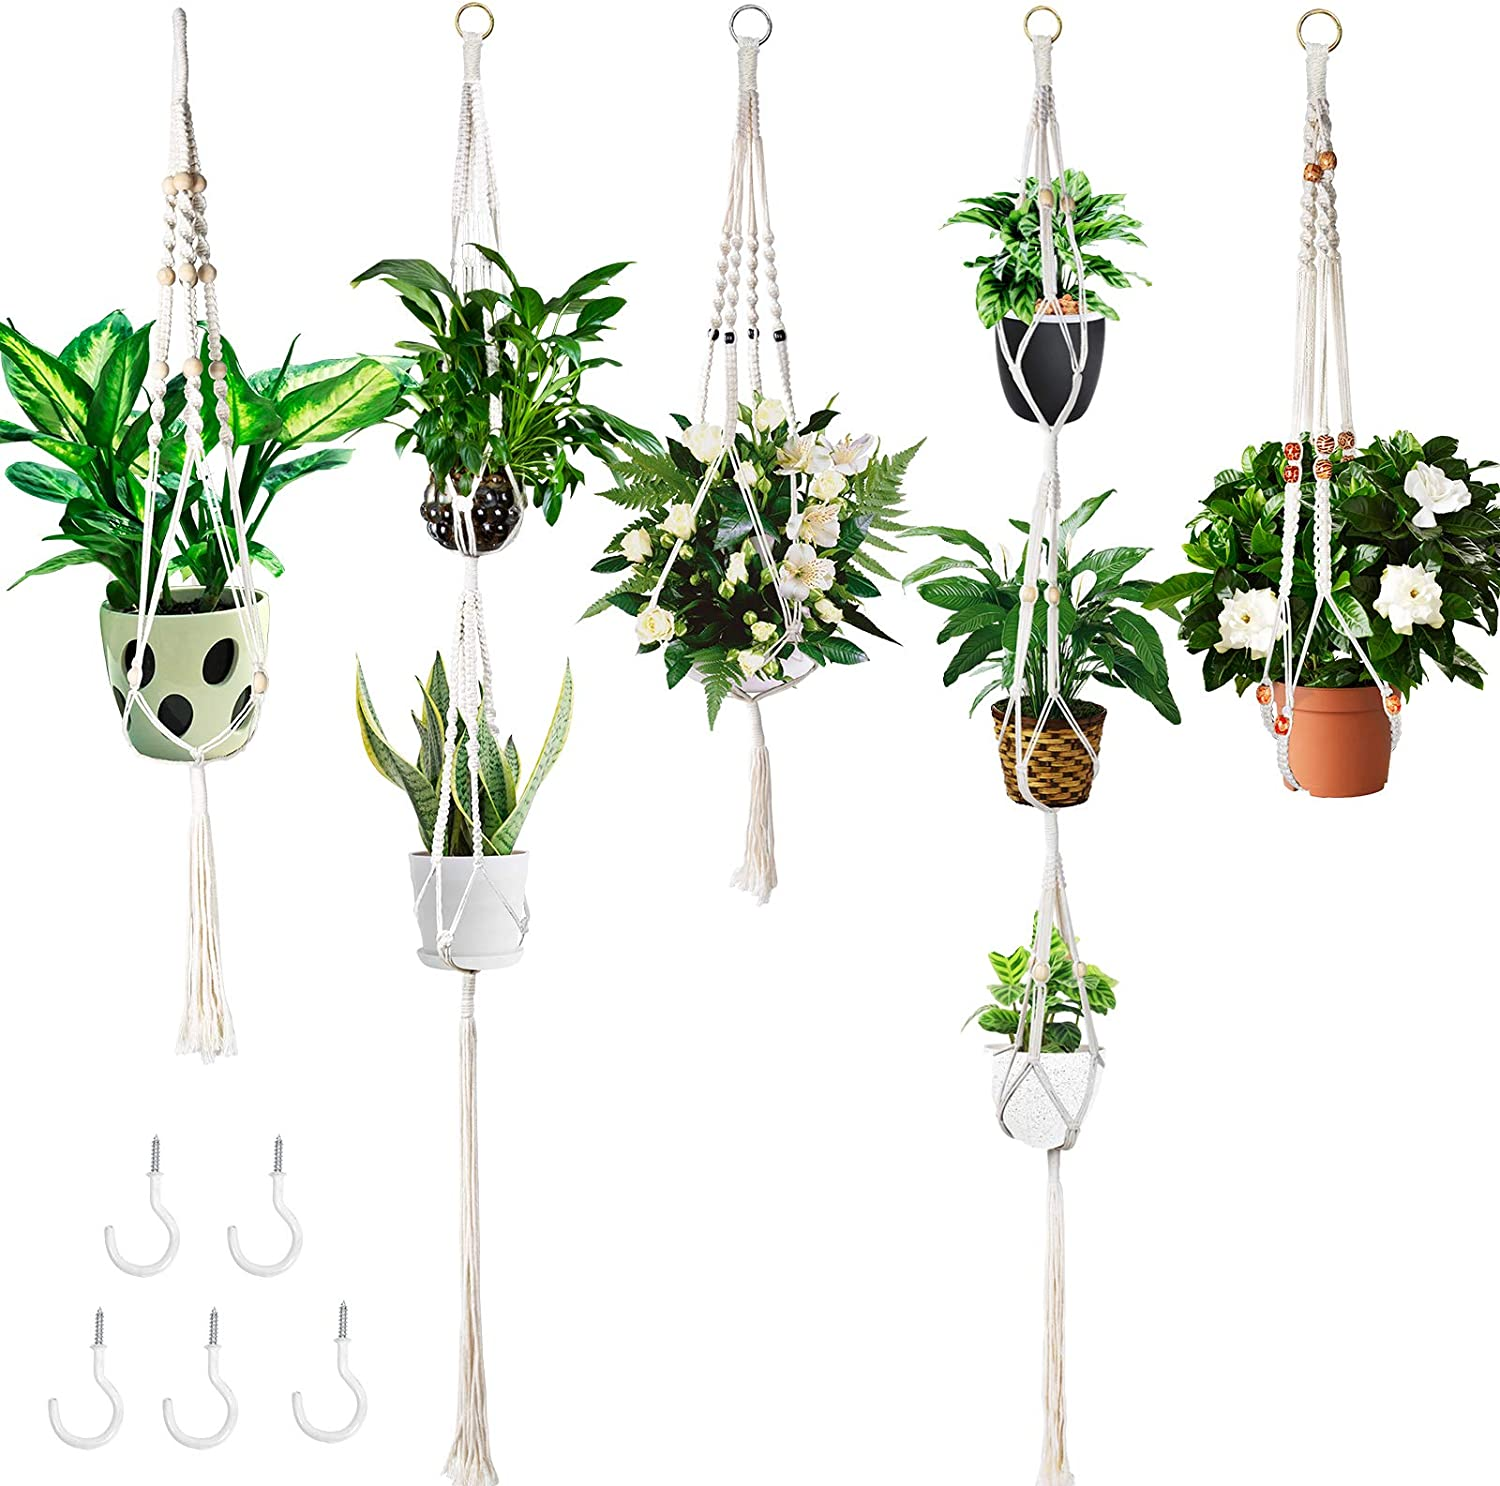 5 Packs Macrame Plant Hangers, Handmade Cotton Rope Indoor Wall Hanging Planters with 5 Hooks Set Flower Pots Holder Stand for Outdoor Boho Home Decor